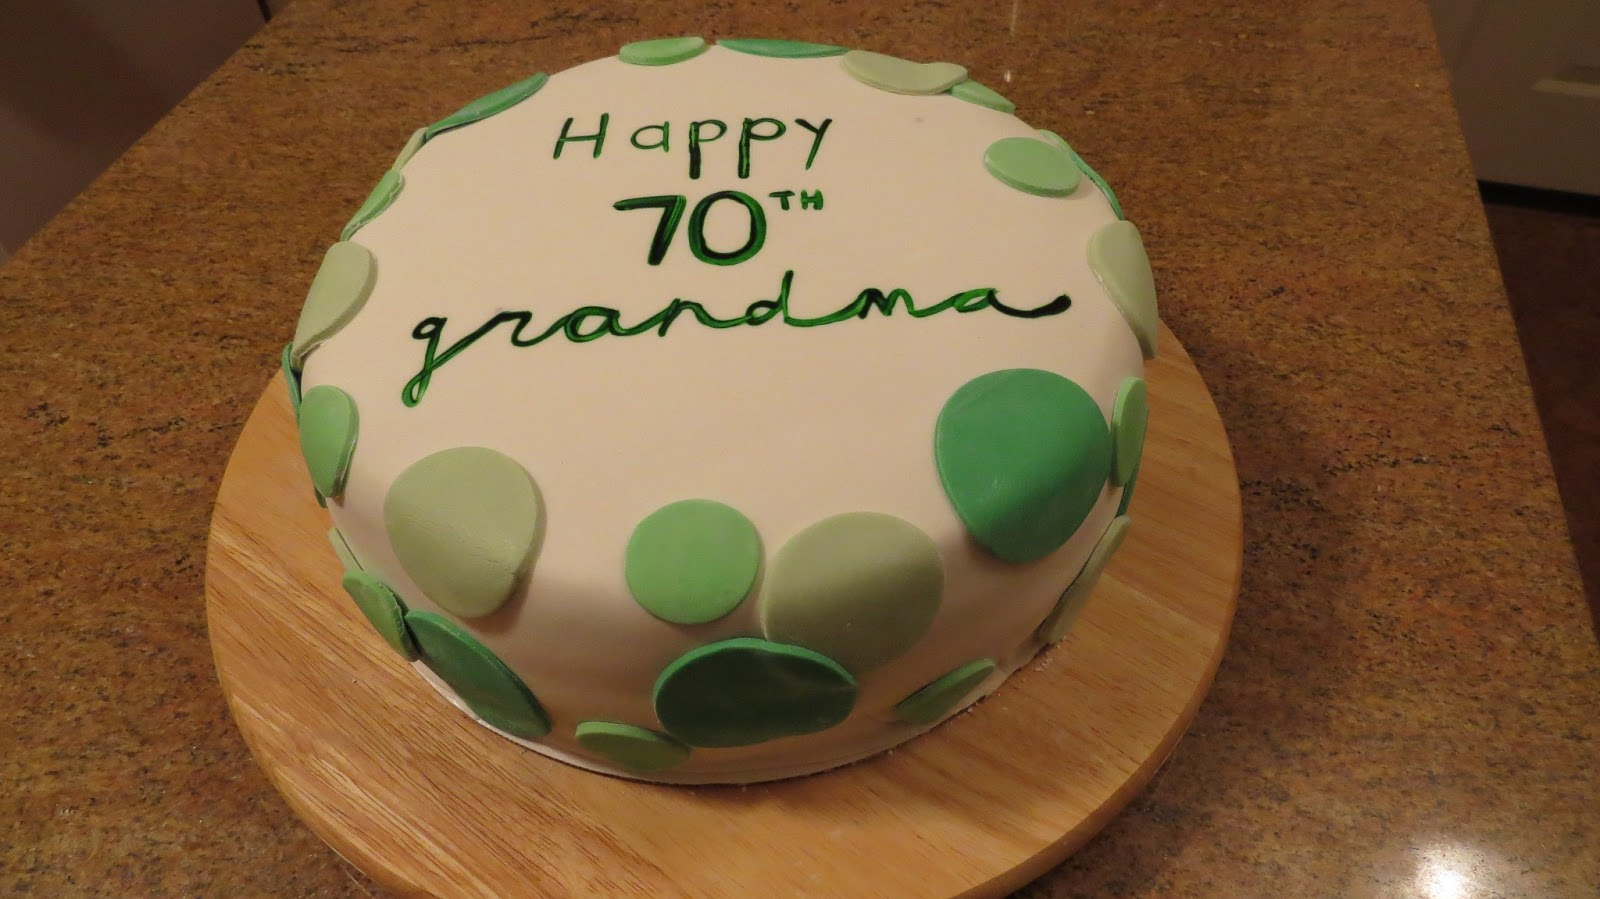 My Coworker Shannons Mom Known By Most As Grandma Celebrated Her 70th Birthday This Weekend After A Big Dinner Out With The Family Shannon Requested